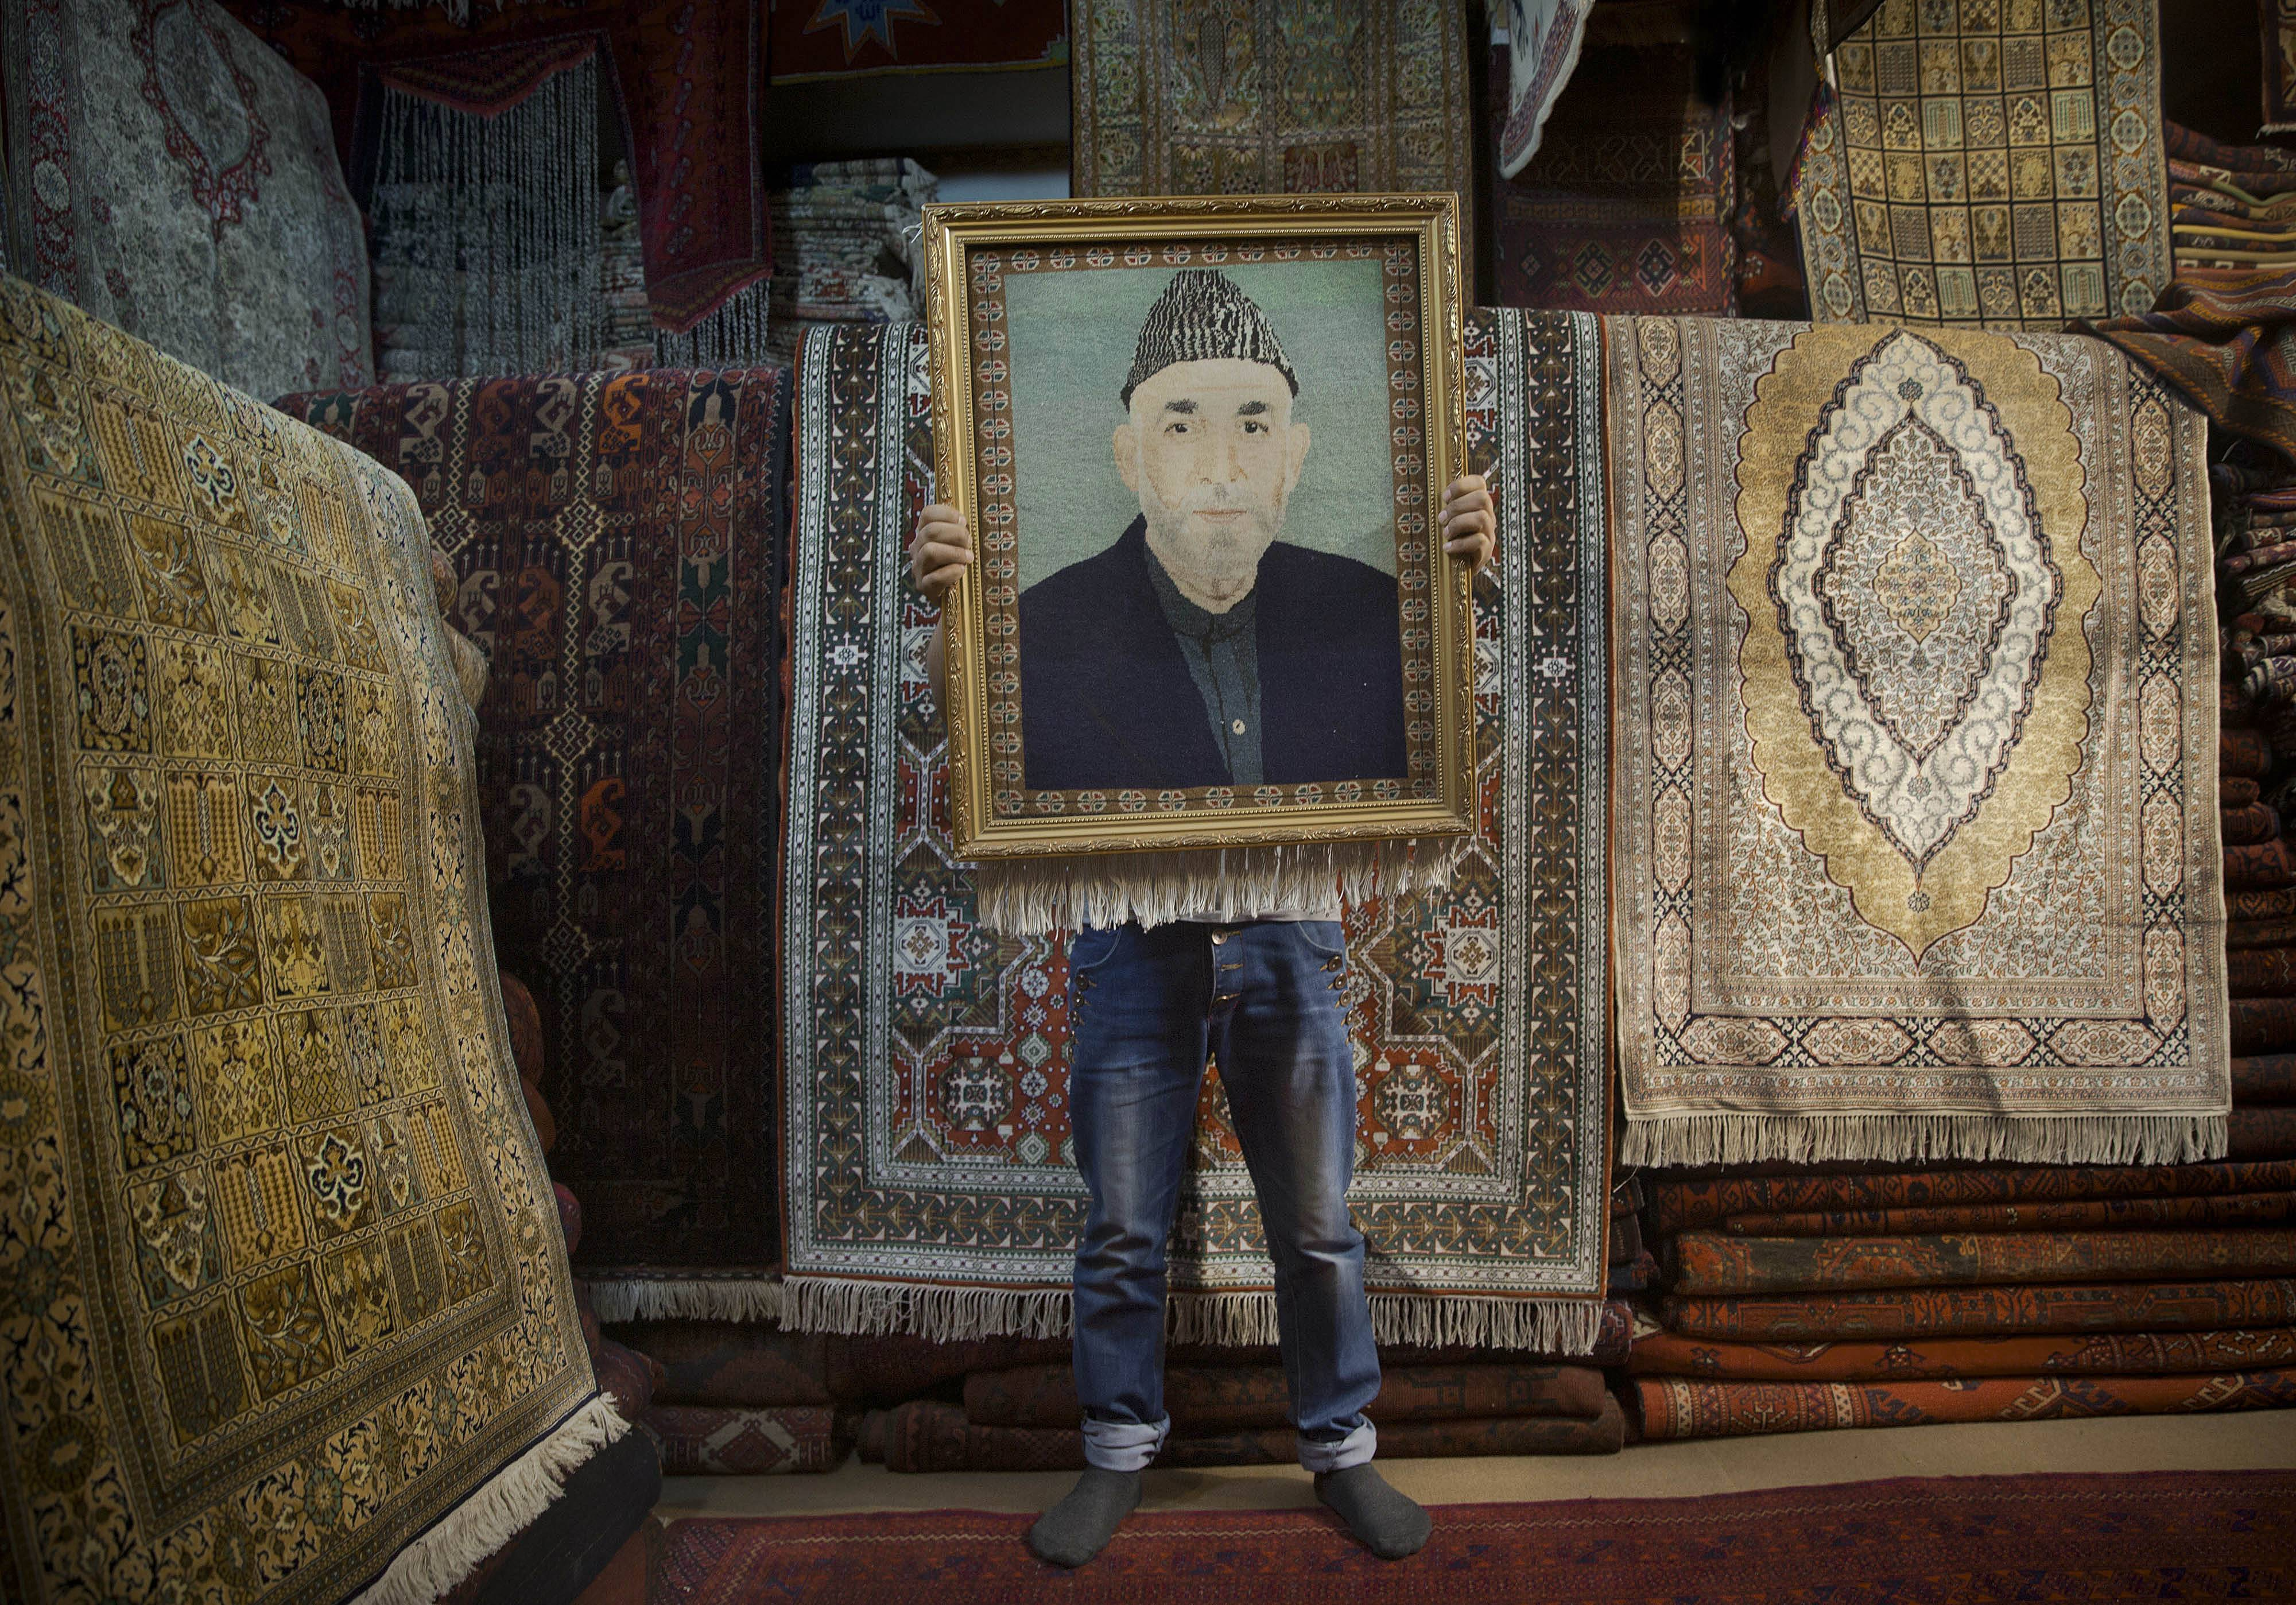 In this Sunday, March 30, 2014 file photo made by Associated Press photographer Anja Niedringhaus, an Afghan carpet seller holds up a framed carpet depicting Afghan President Hamid Karzai in his store in Kabul, Afghanistan.